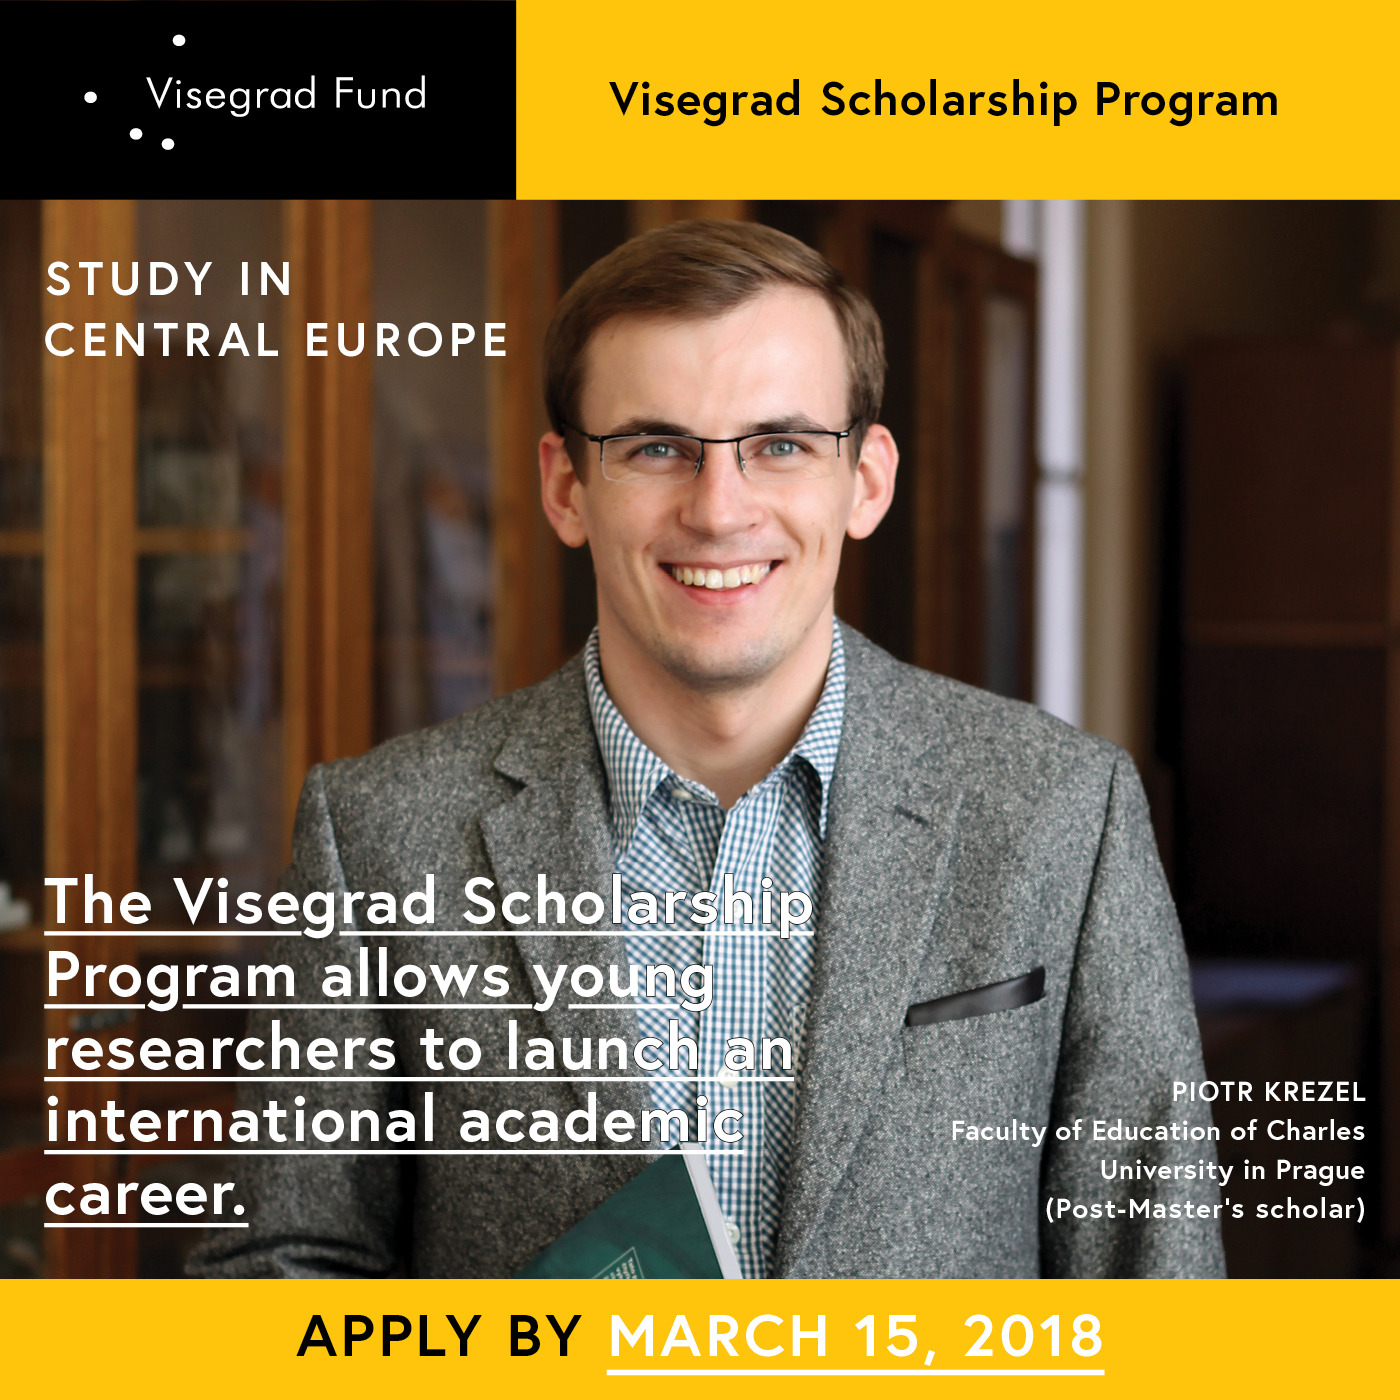 Visegrad Scholarship Program